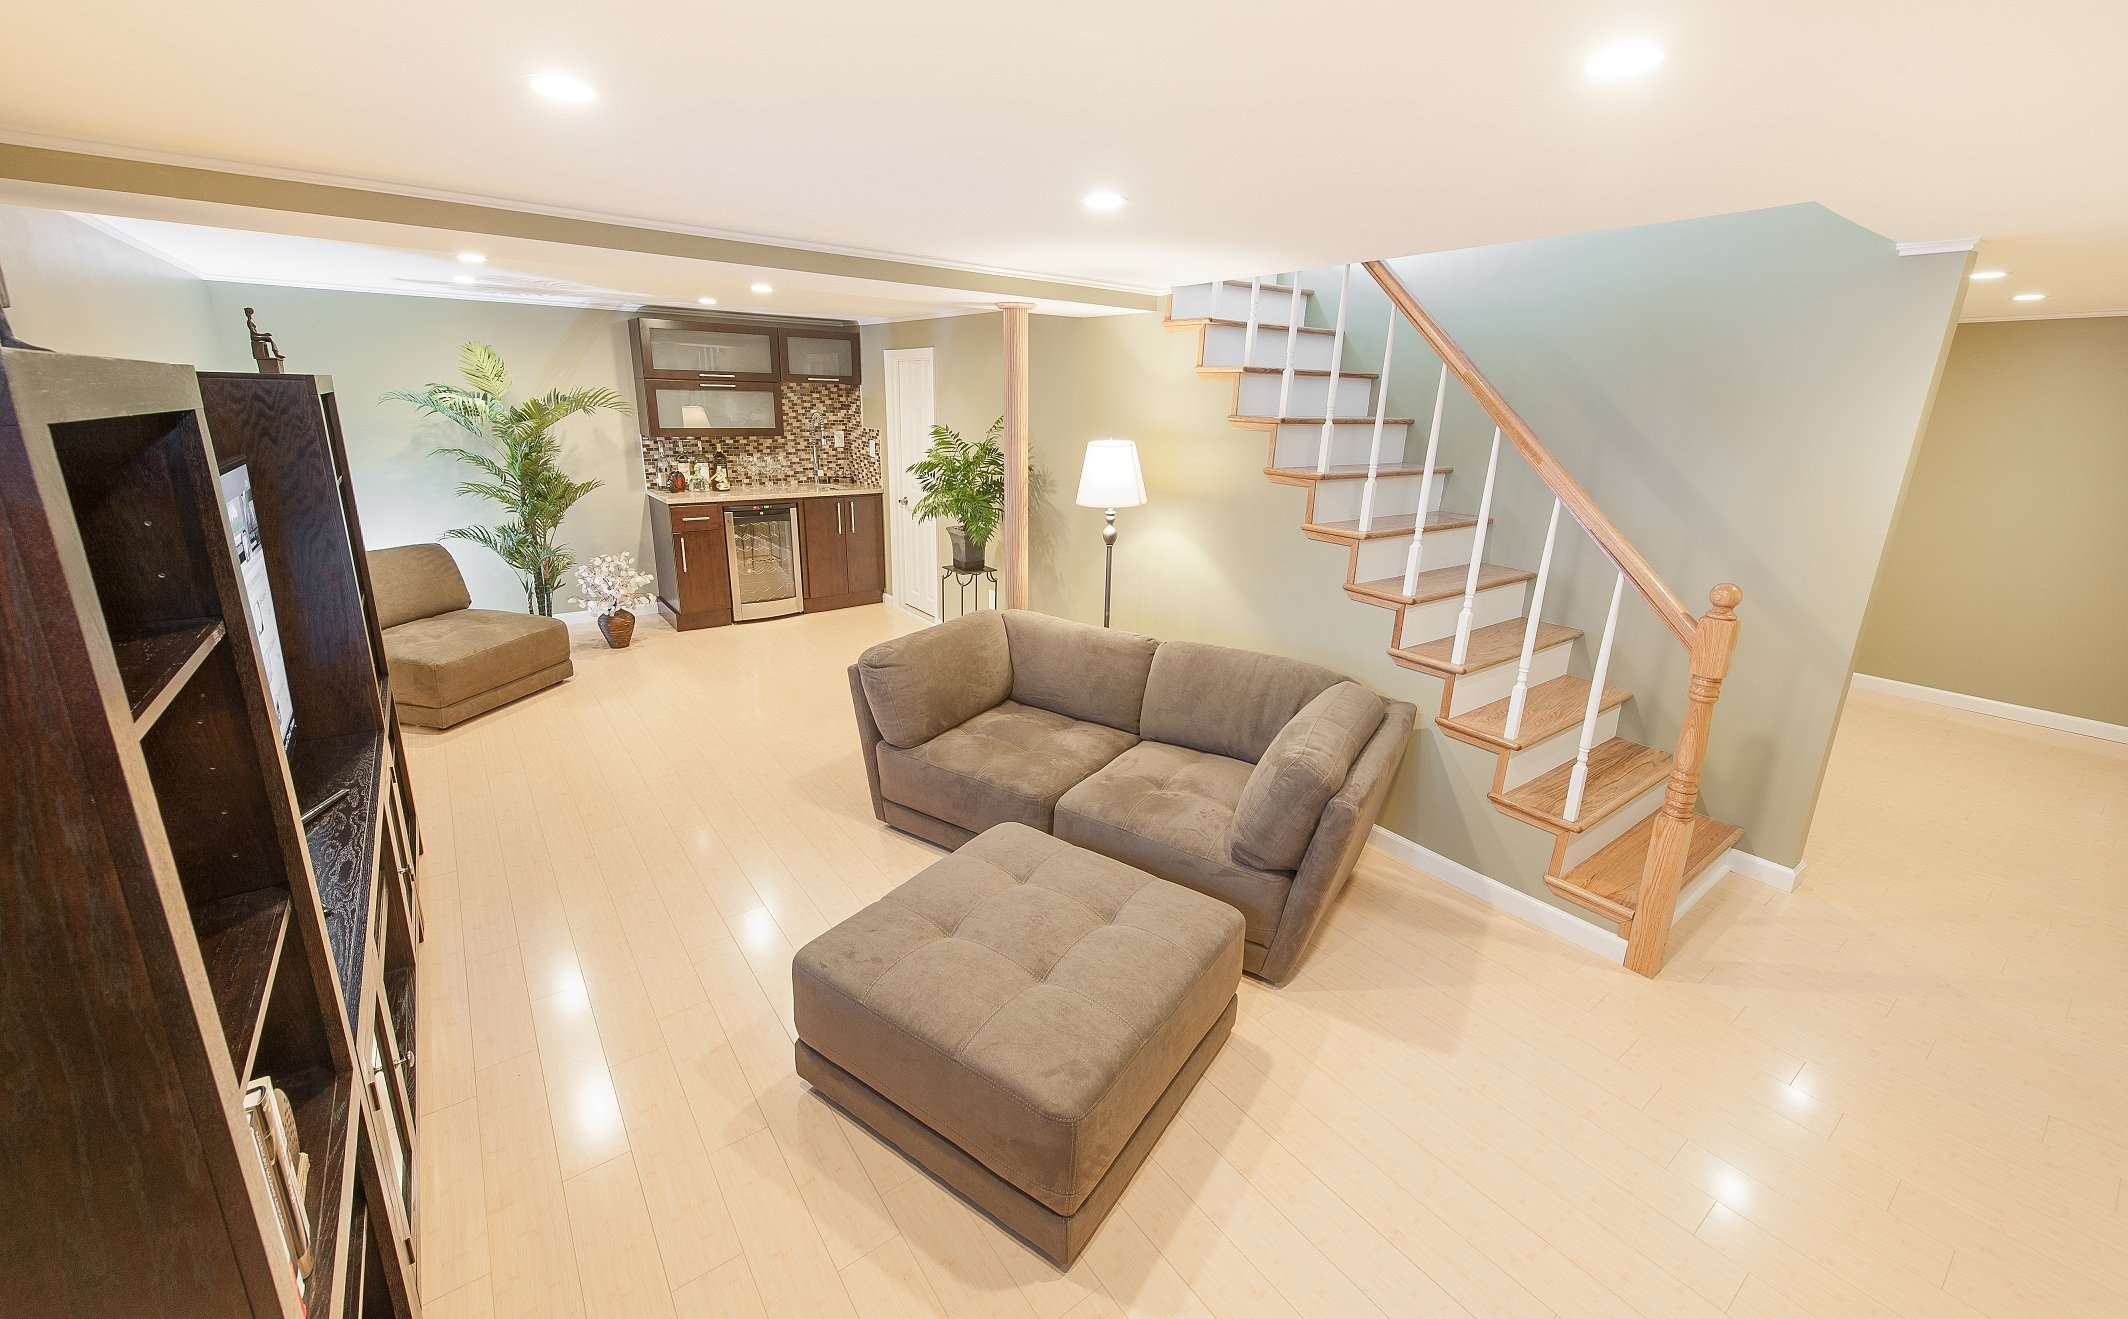 Basement flooring options choosing a basement floor for Best flooring for basement family room